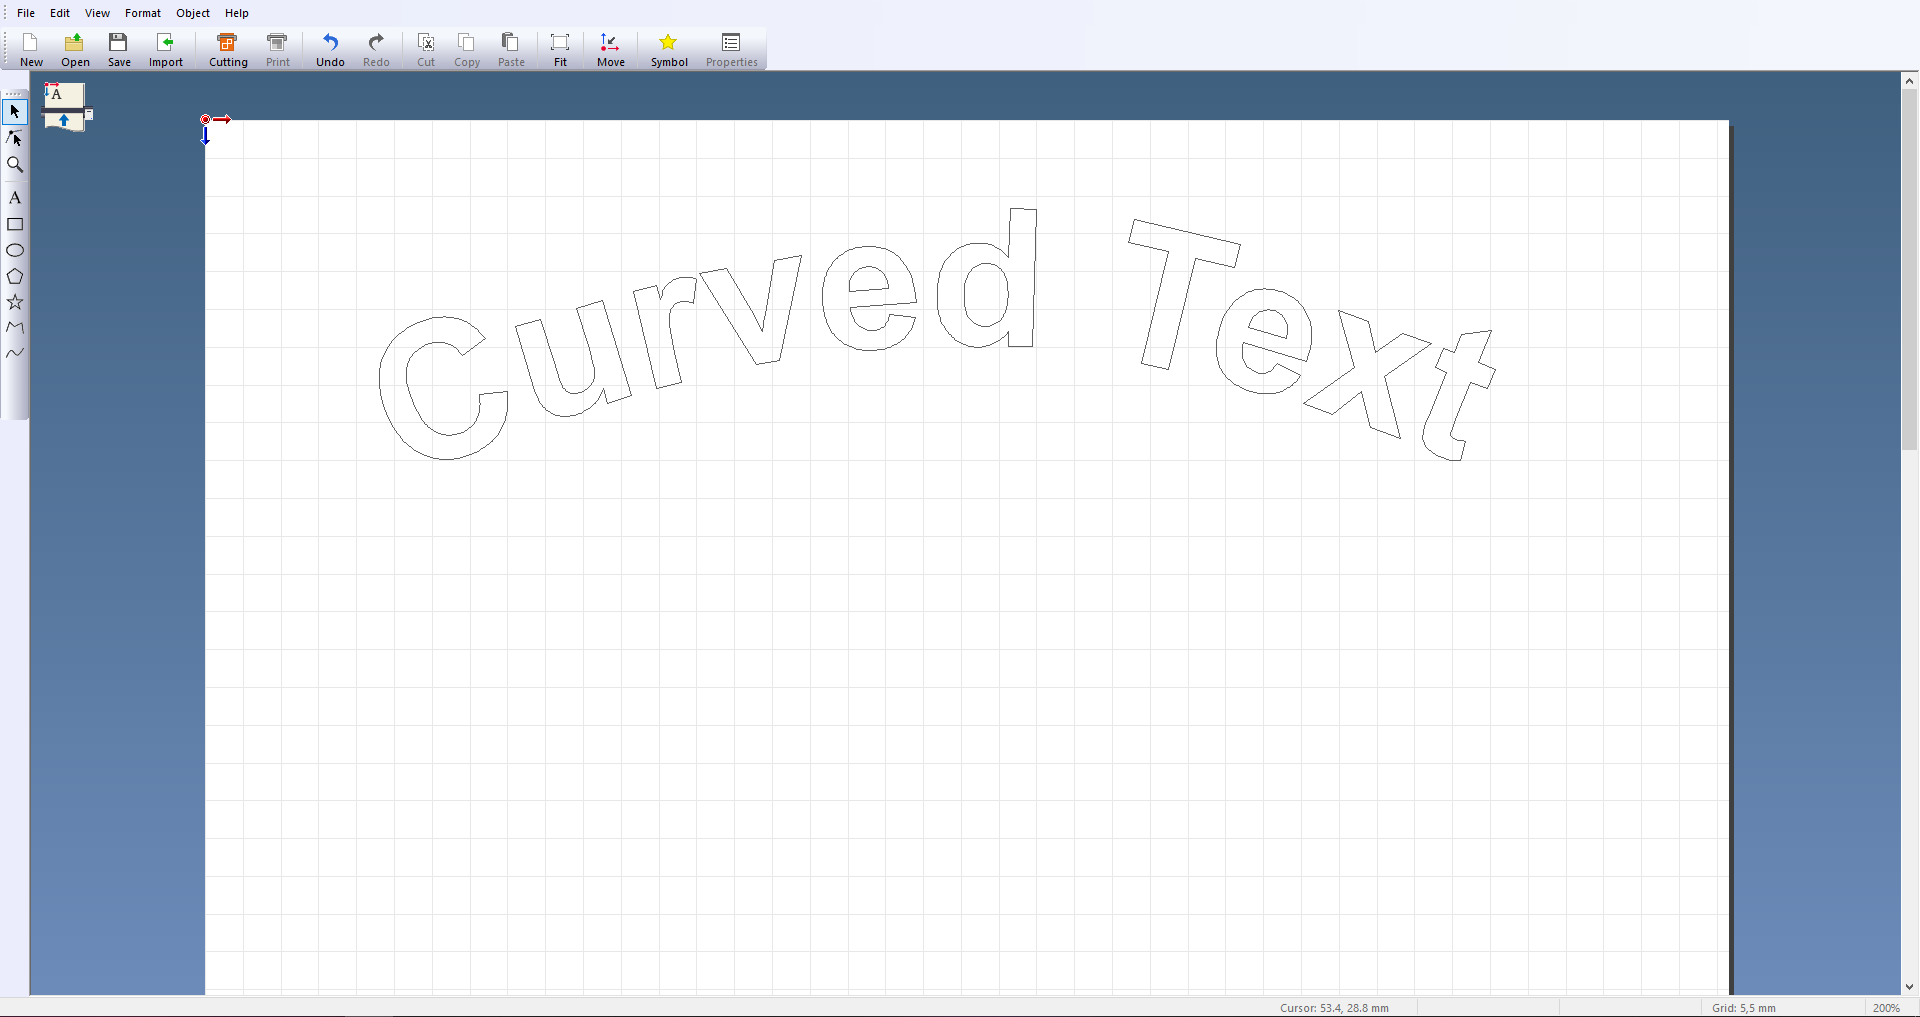 Curved text using CutStudio by Roland DG